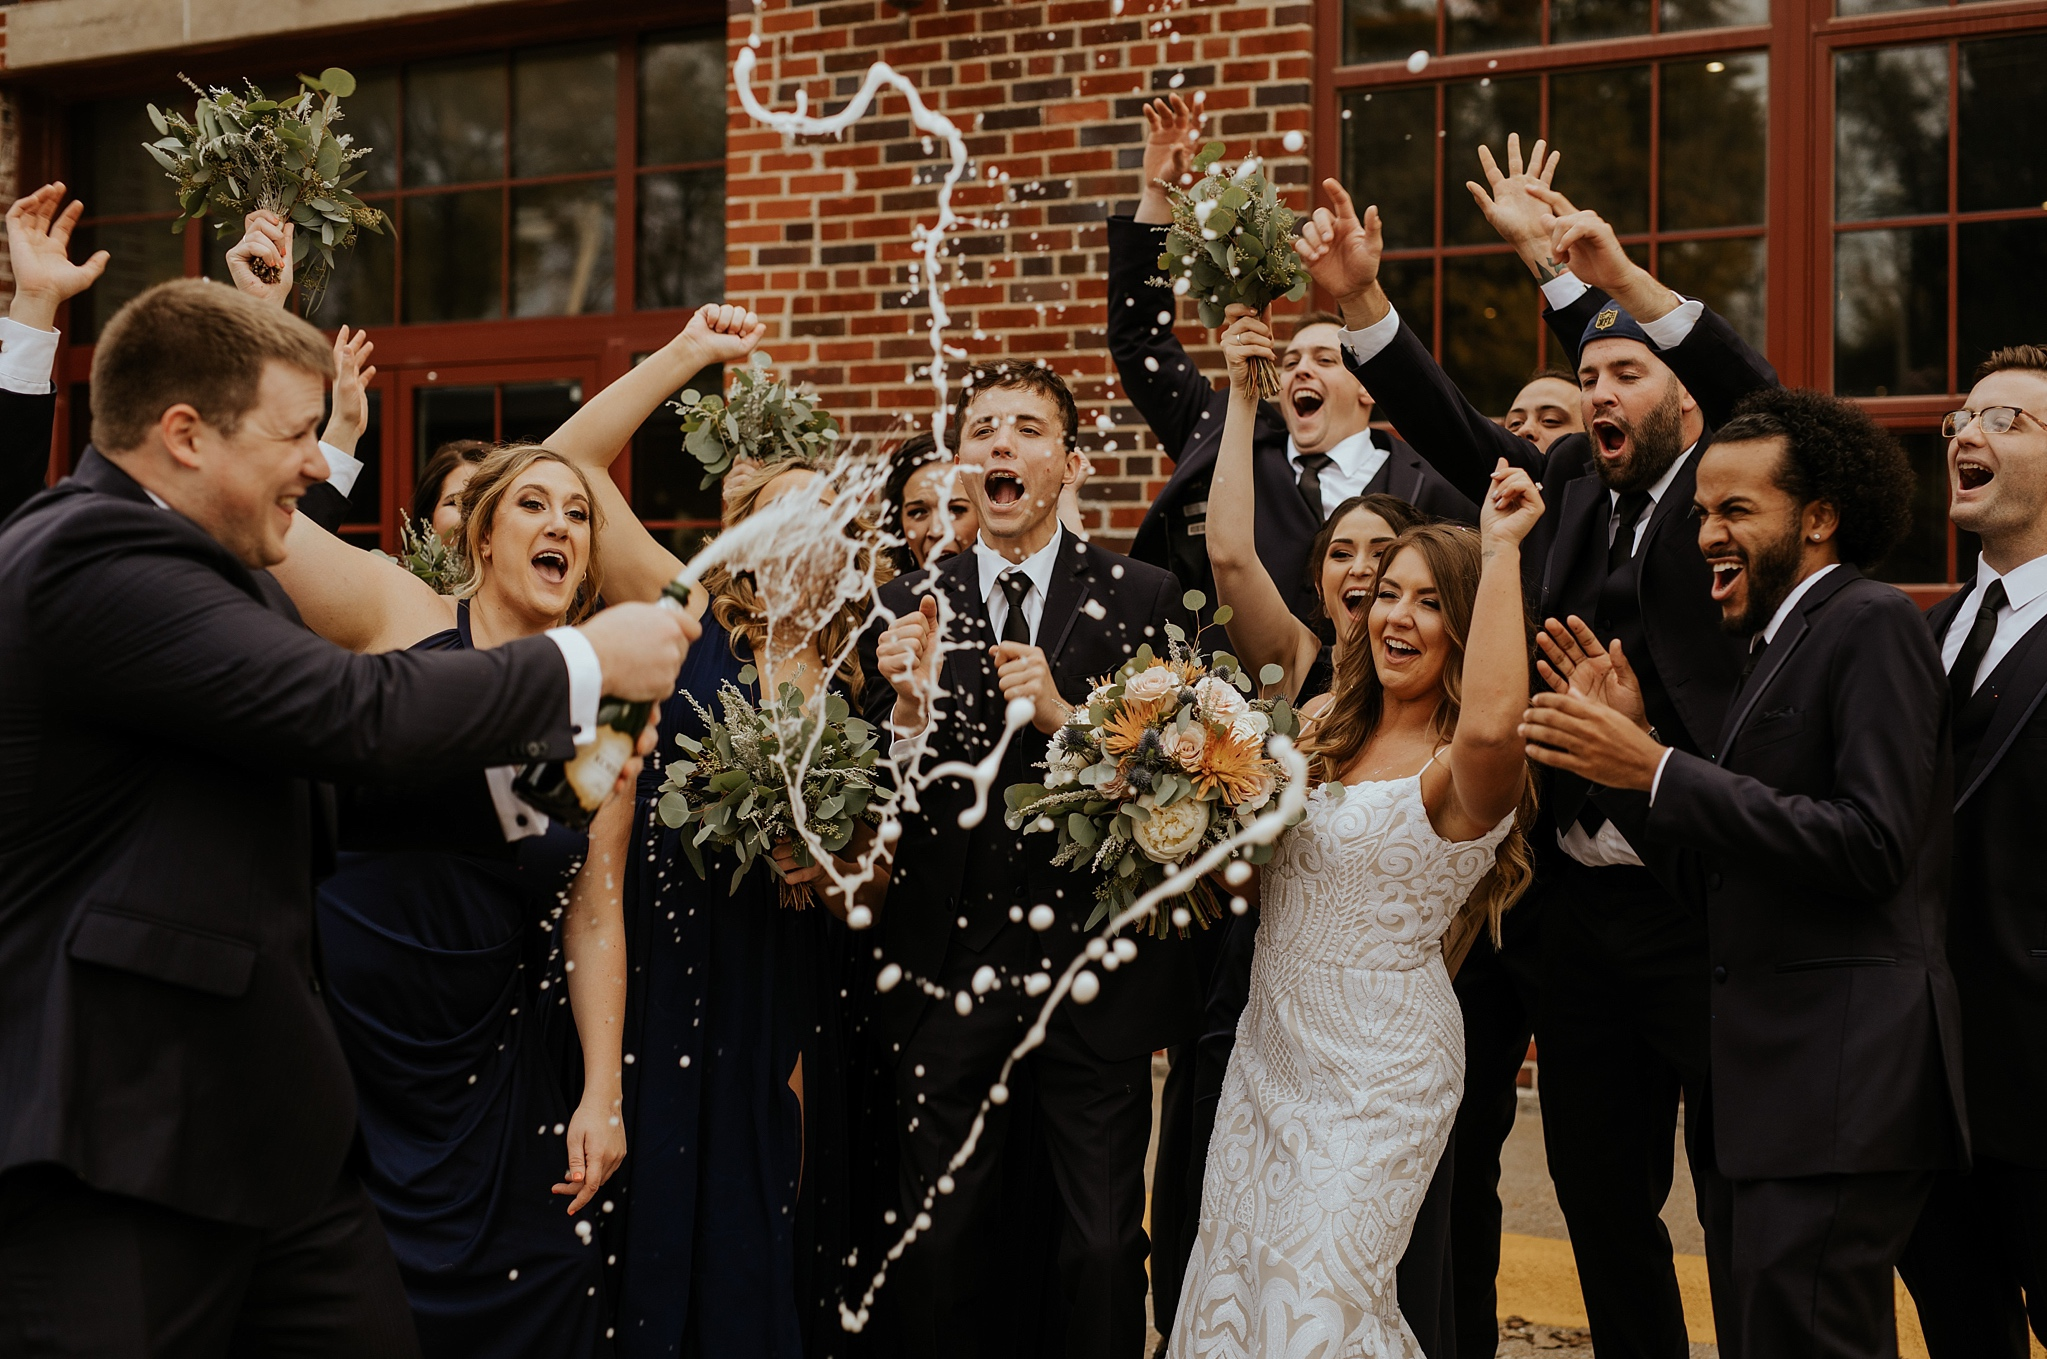 The Omar Arts and Events Center Wedding in Midtown Omaha Nebraska  - Trin Jensen Photography_0031.jpg